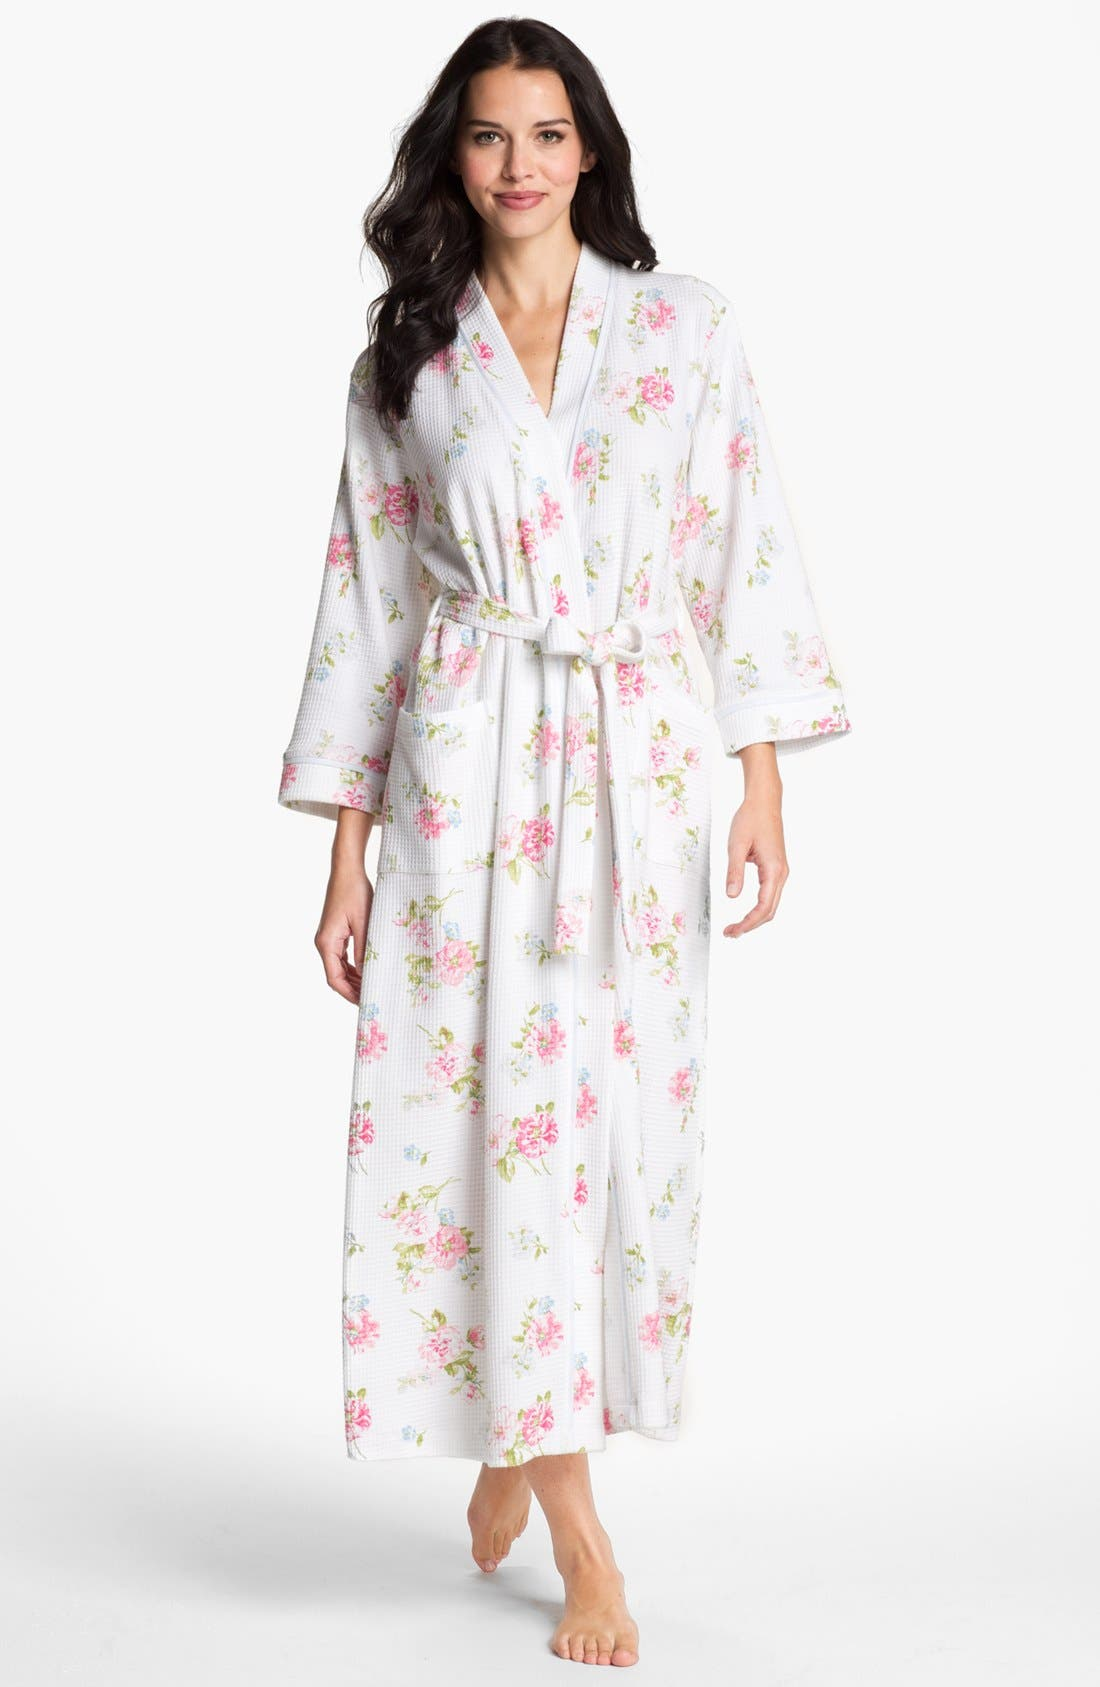 Alternate Image 1 Selected - Carole Hochman Designs Long Floral Print Robe